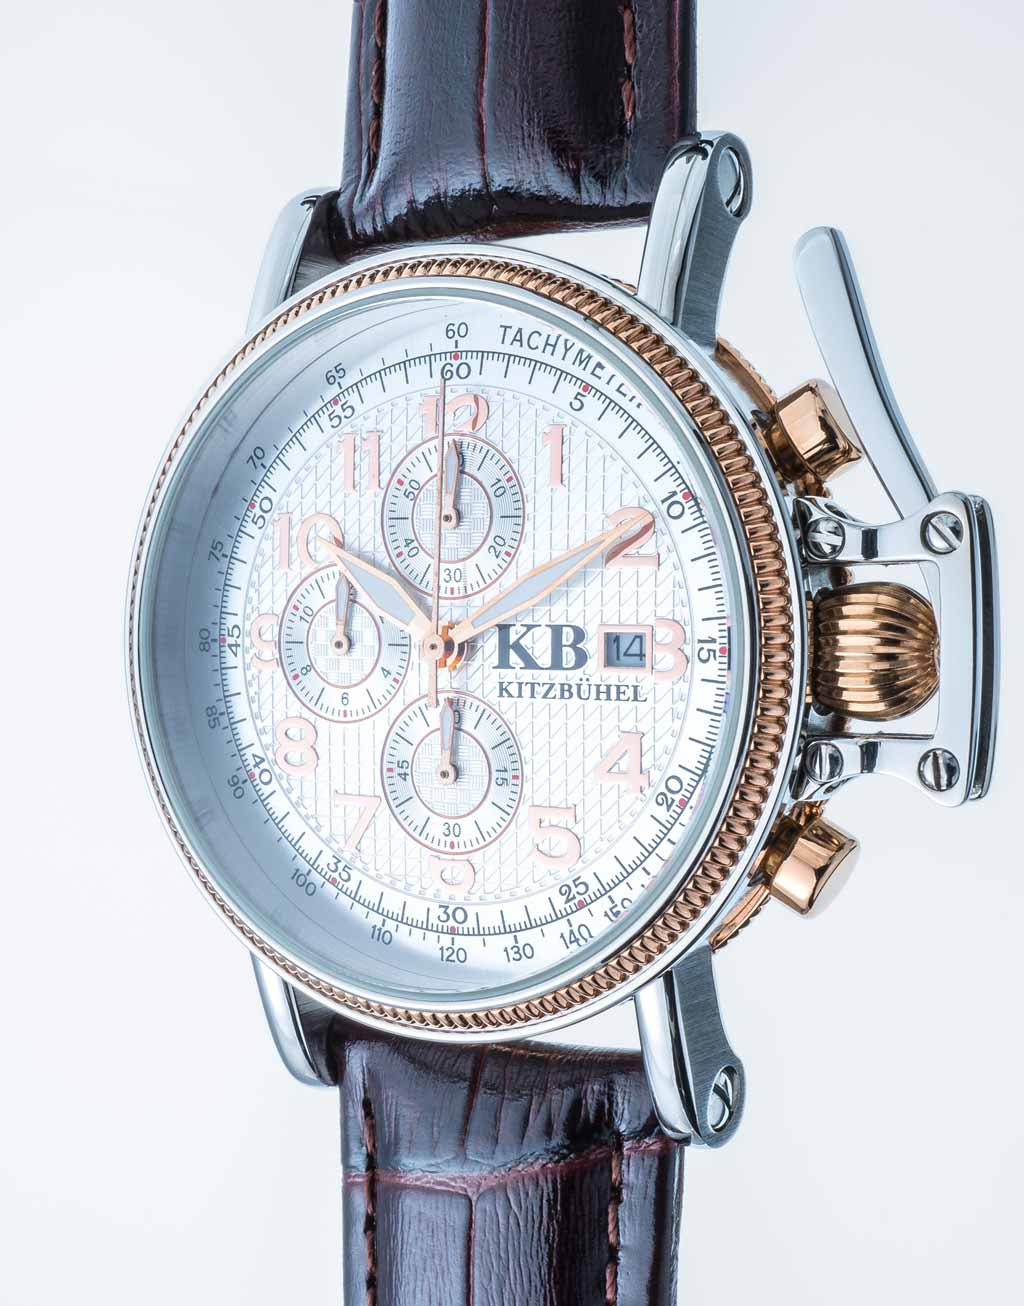 KB Watch – Special Stopwatch